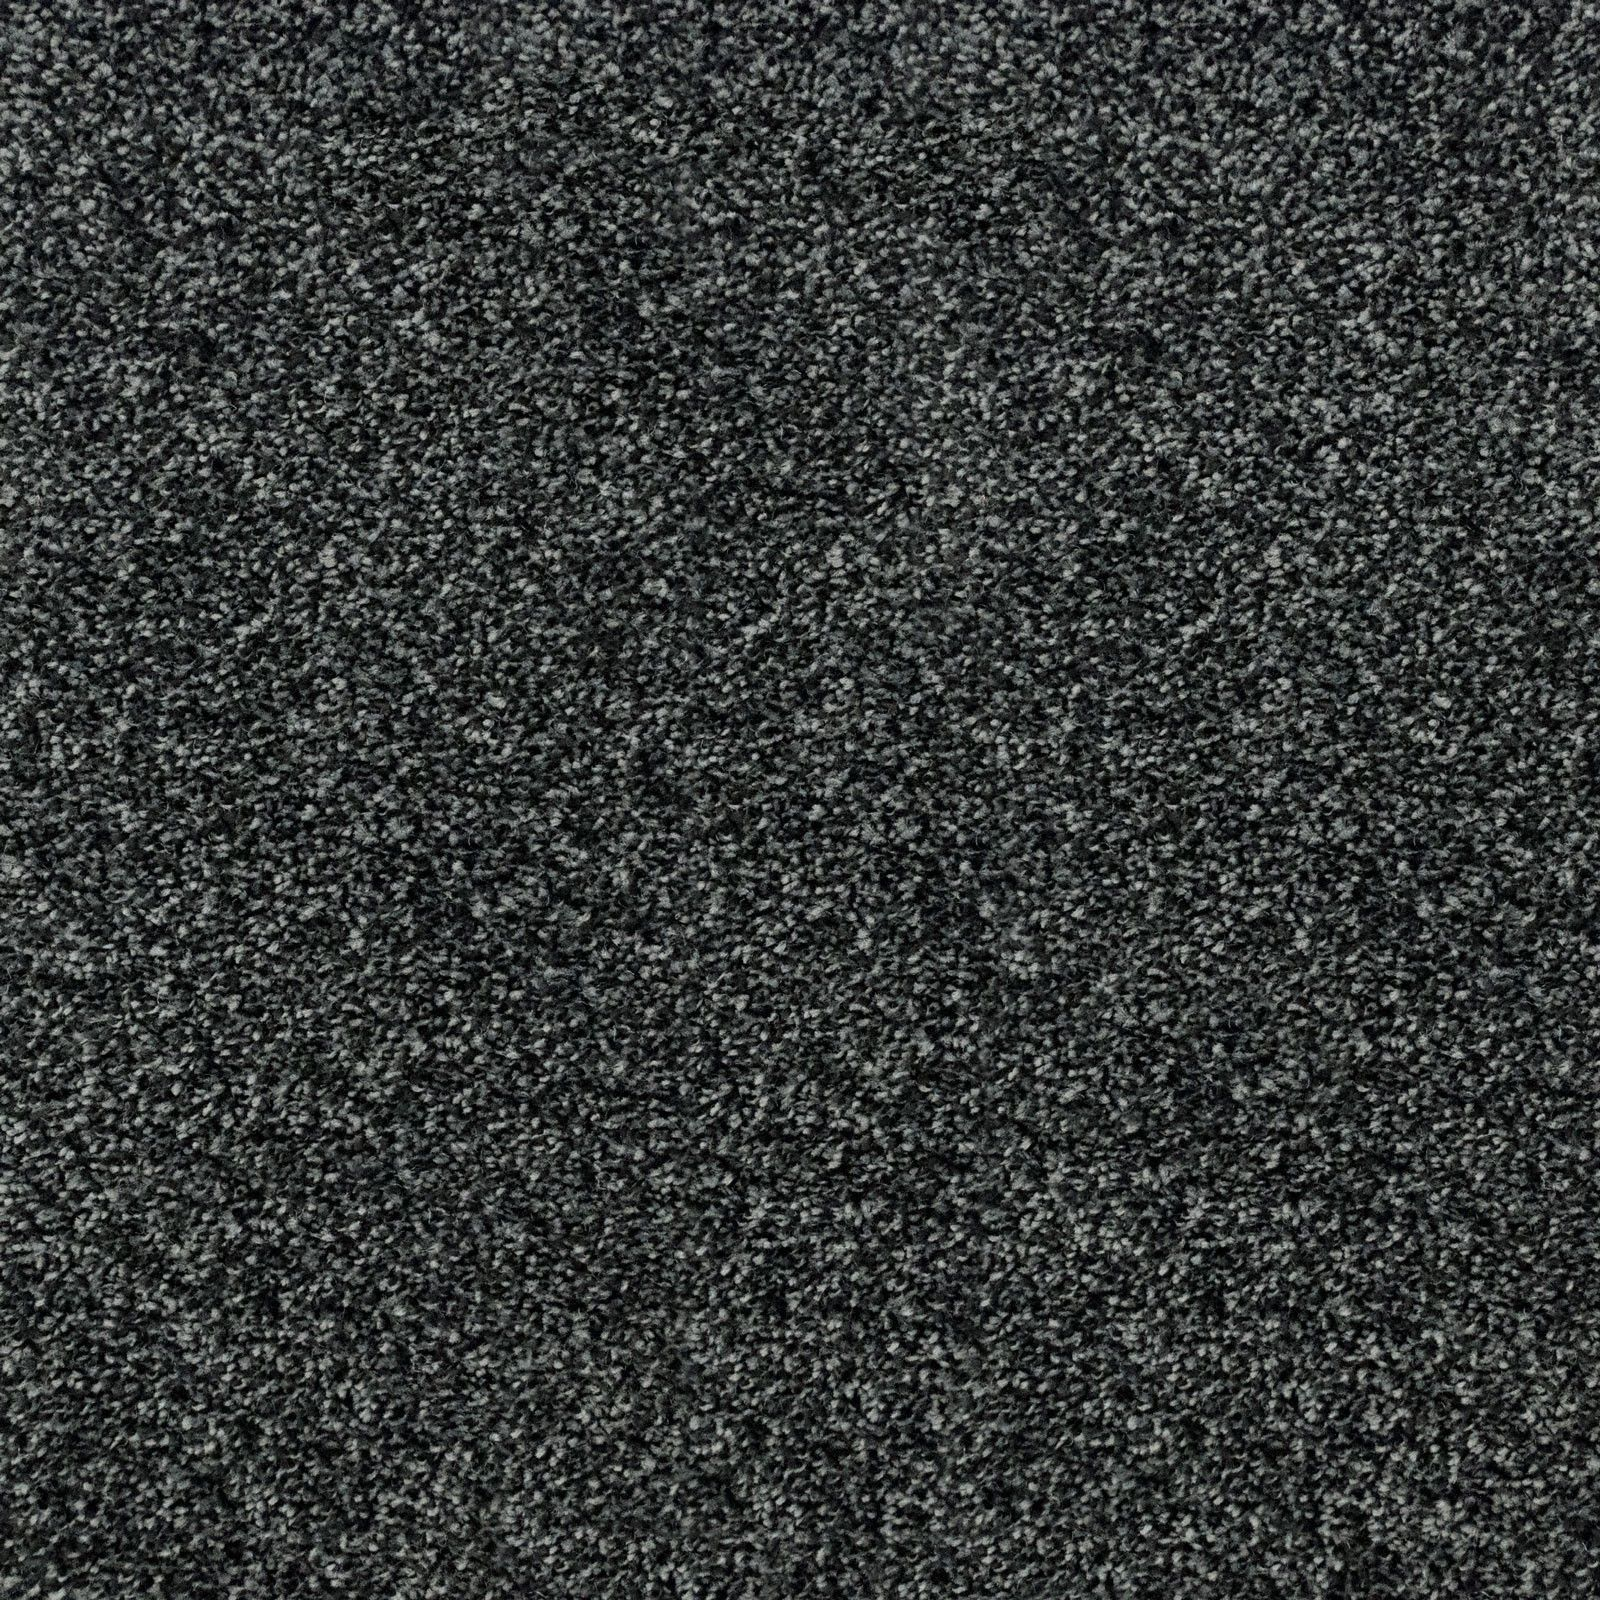 Top Saxony Dusk Grey - 4302 Carpet